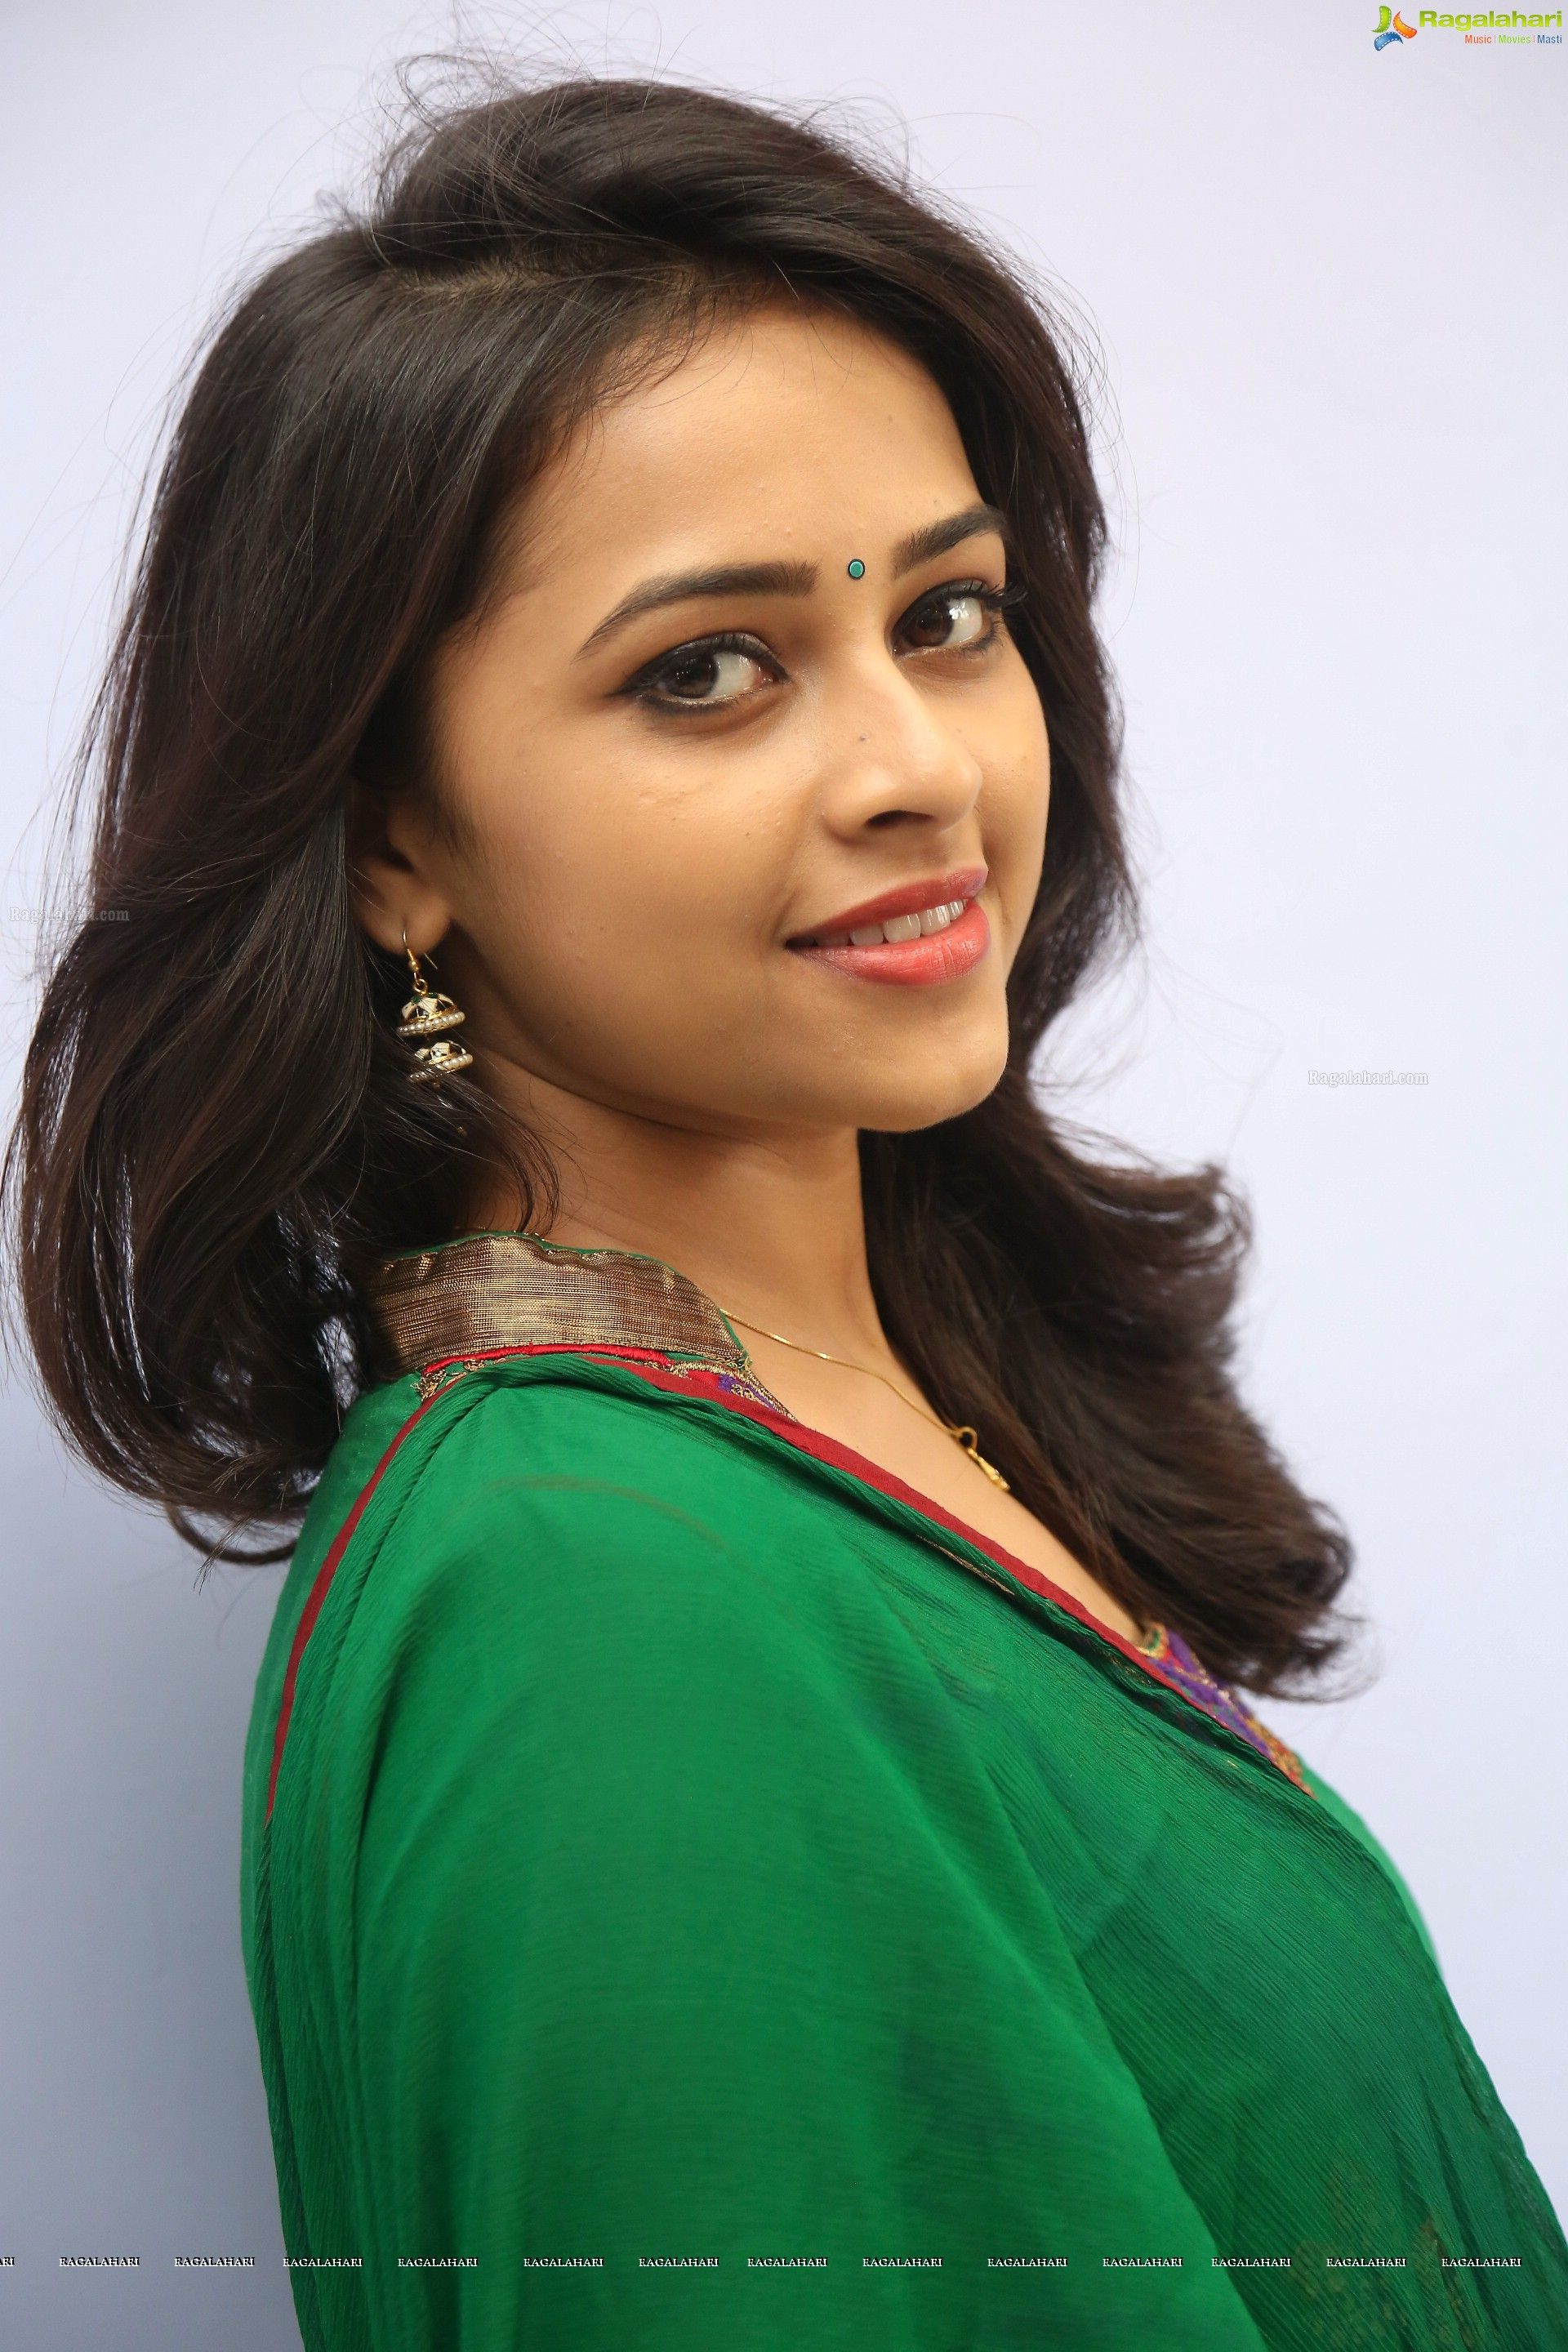 gallery.com boobs photos big Www.sri divya